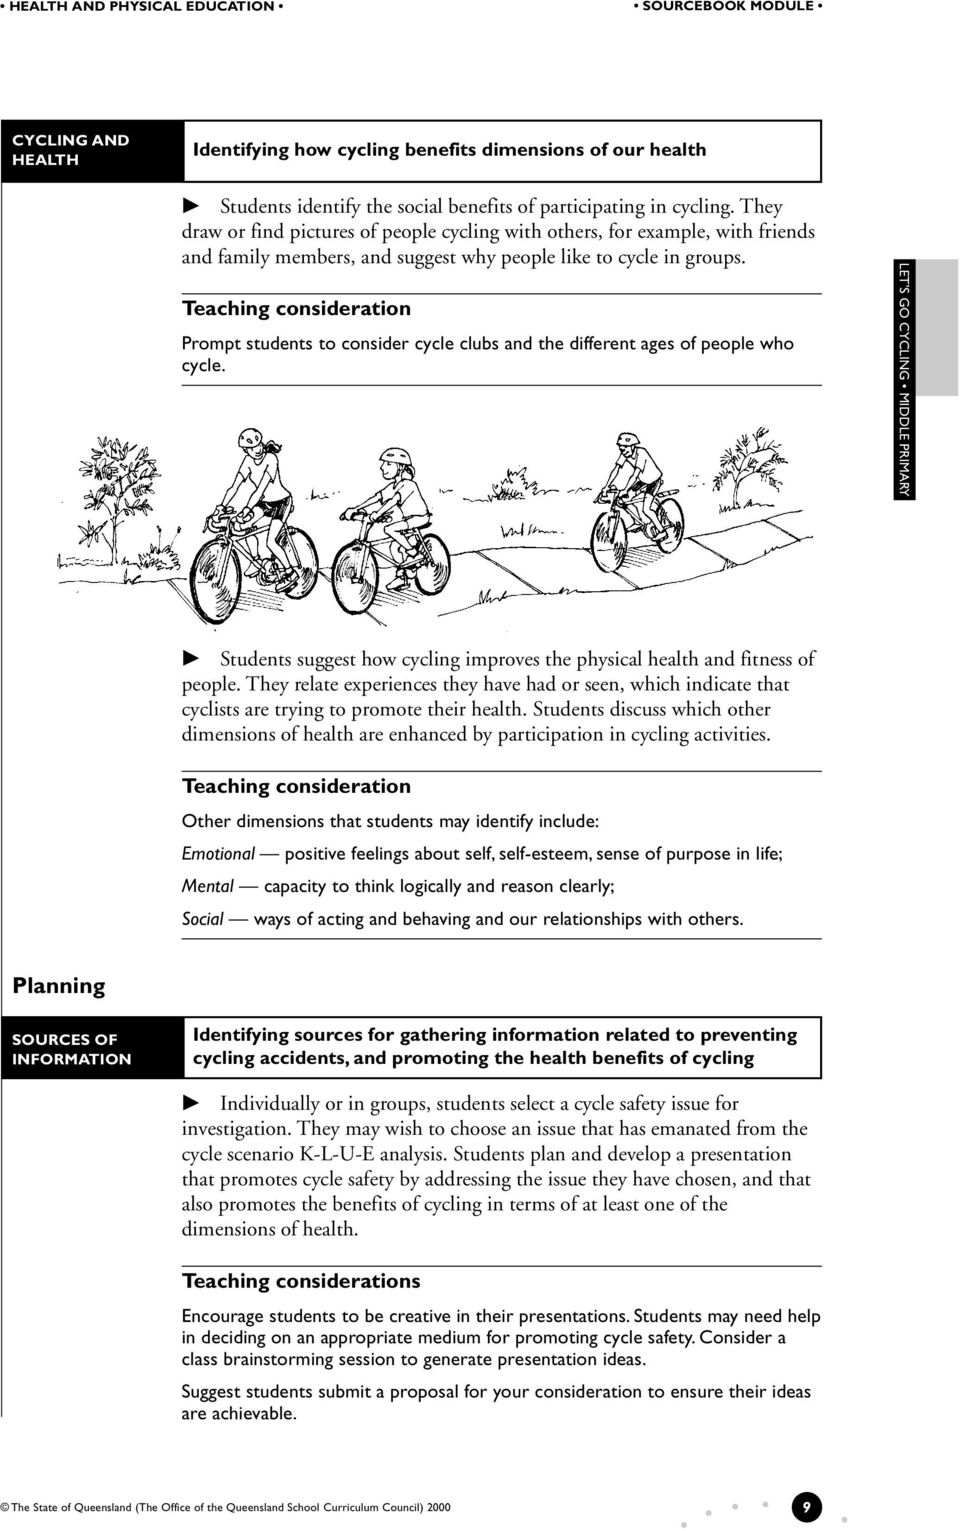 Teaching consideration Prompt students to consider cycle clubs and the different ages of people who cycle. Students suggest how cycling improves the physical health and fitness of people.